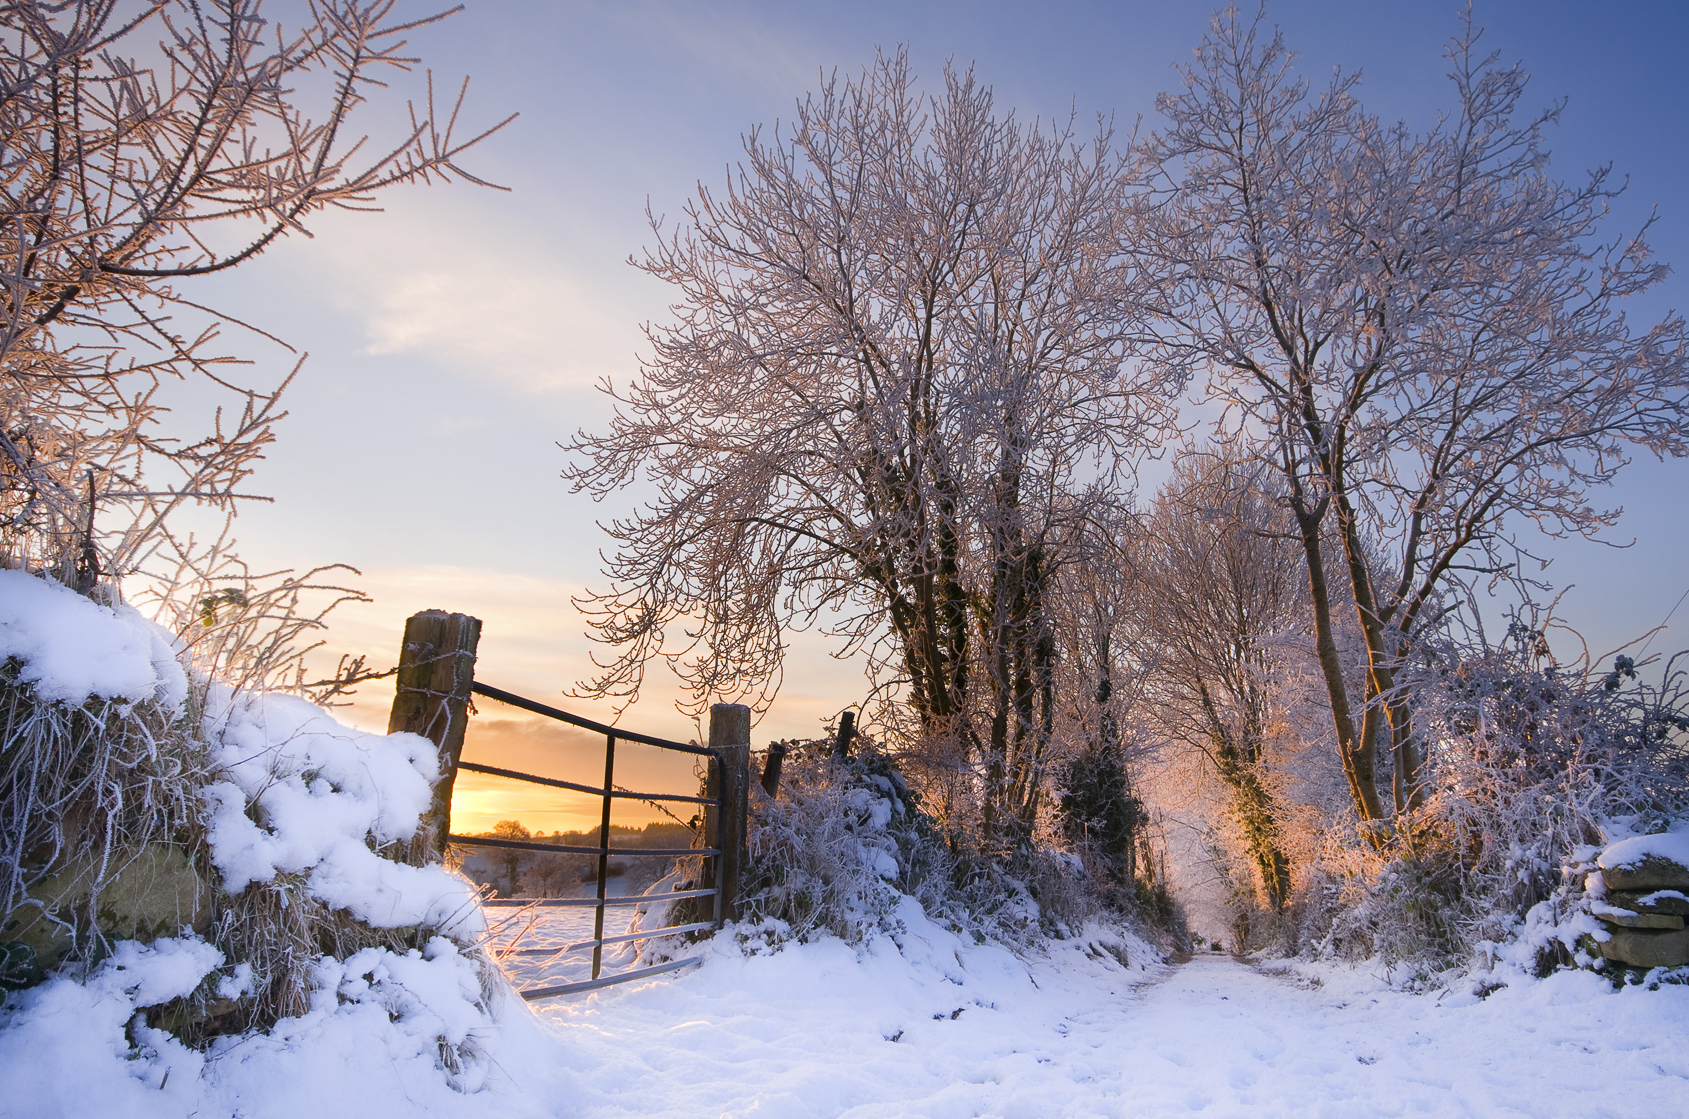 december-dawn-boyle_4228695281_o